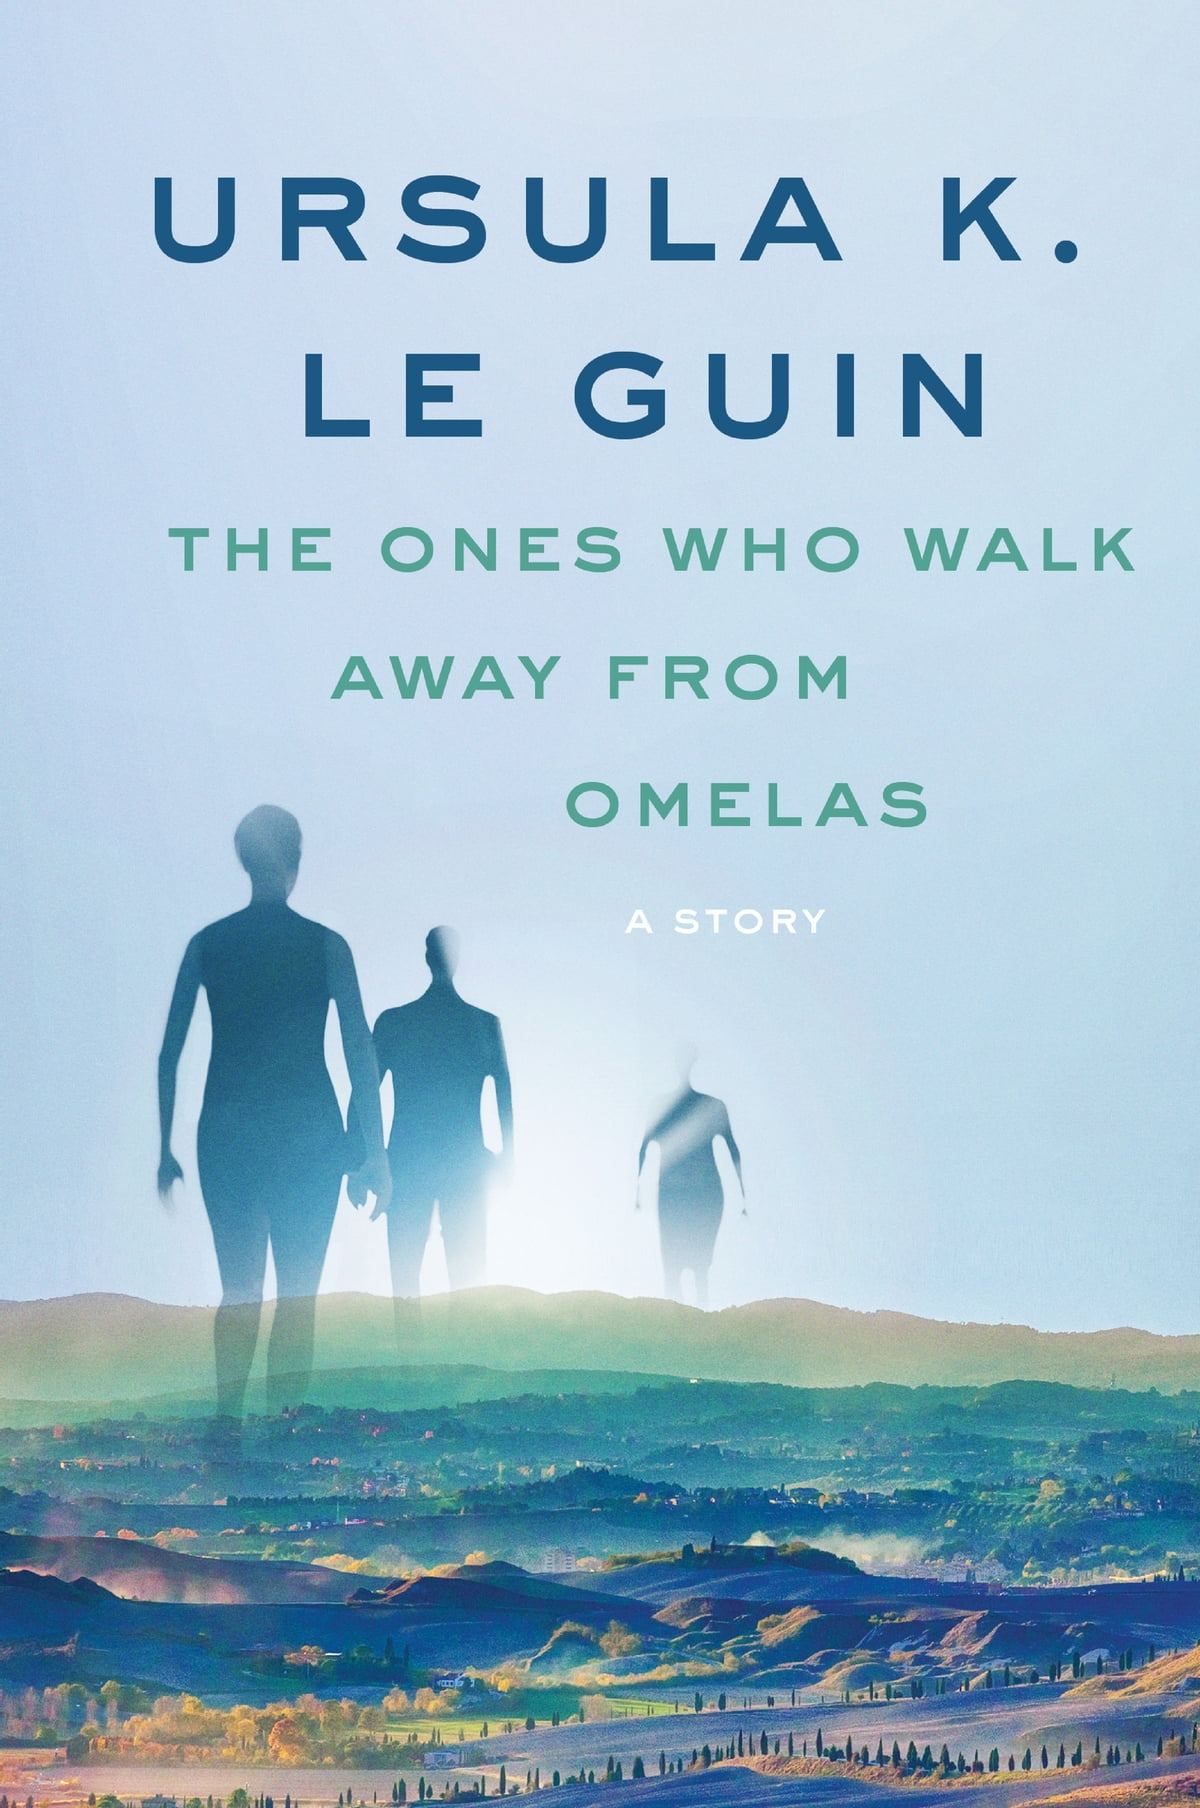 the town of omelas in the short story the ones who walk away from omelas by ursula k le guin The ones who walk away from omelas has  this is what the brilliant ursula k le guin brings up in her very short 1973 story the ones who walk away from omelas.